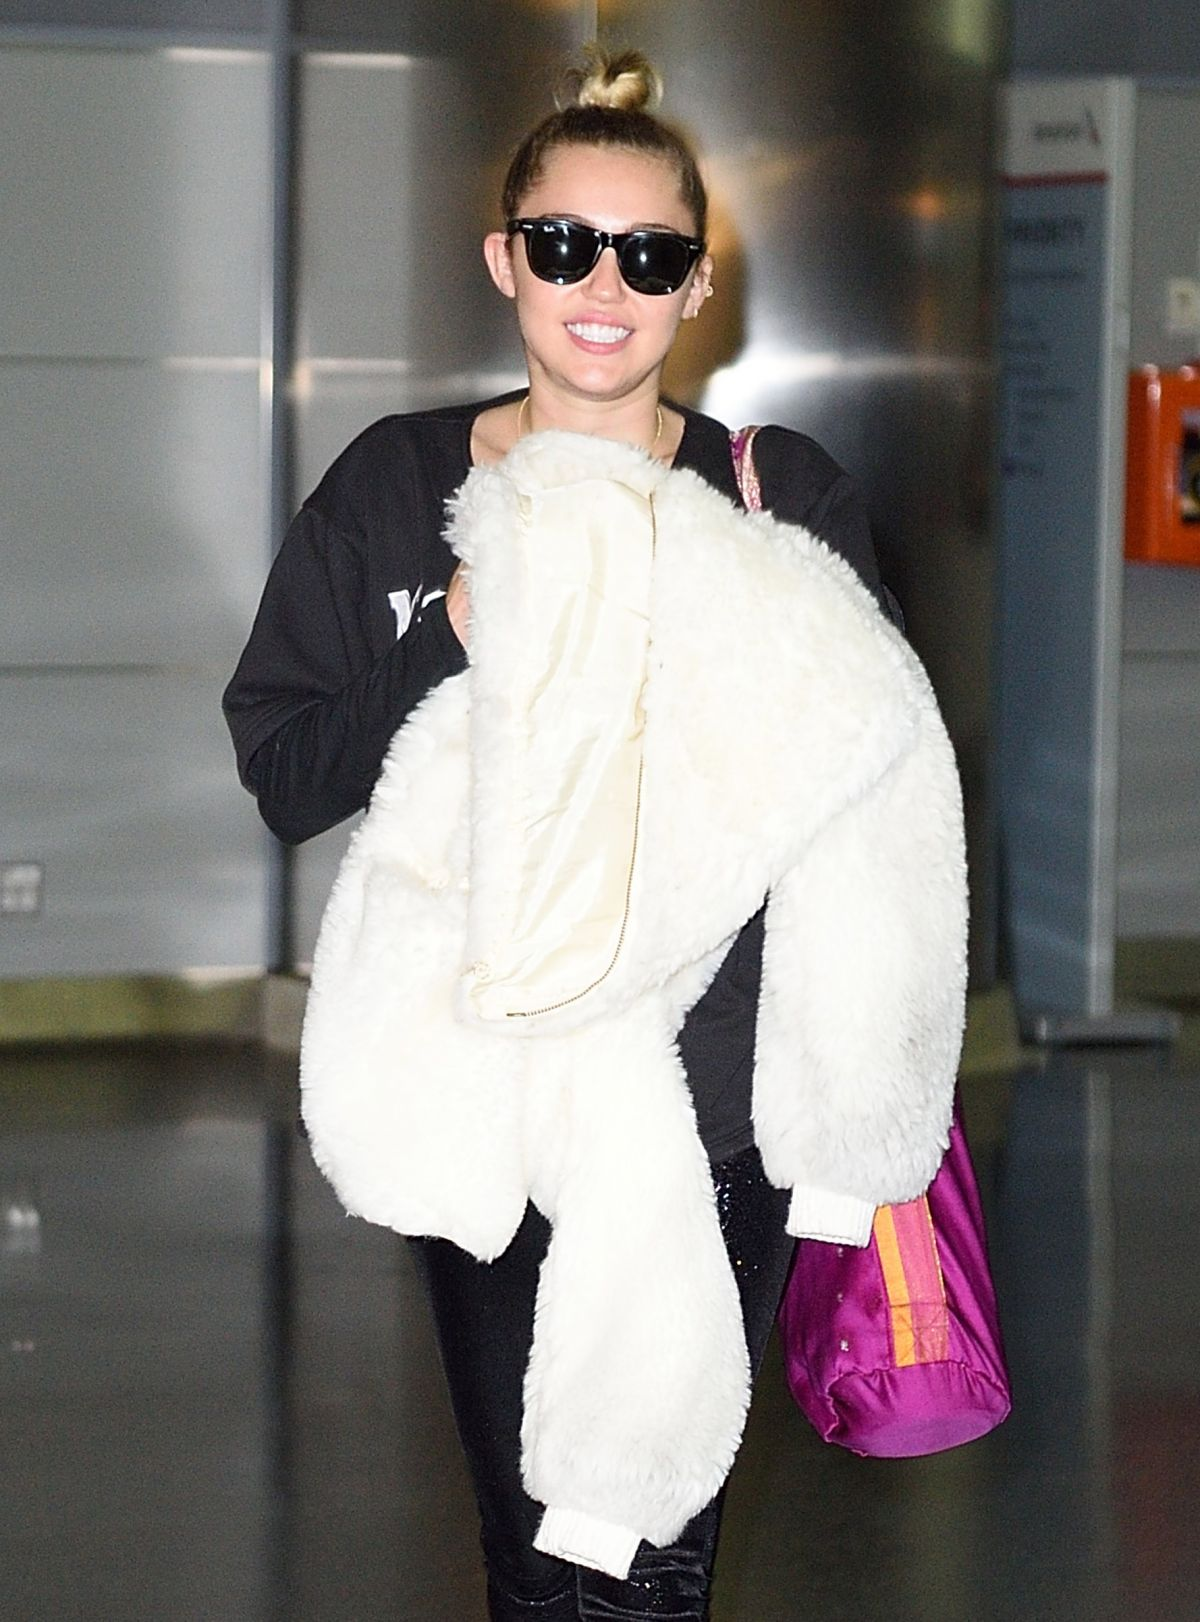 MILEY CYRUS at HFK Airport in New York 02/27/2016